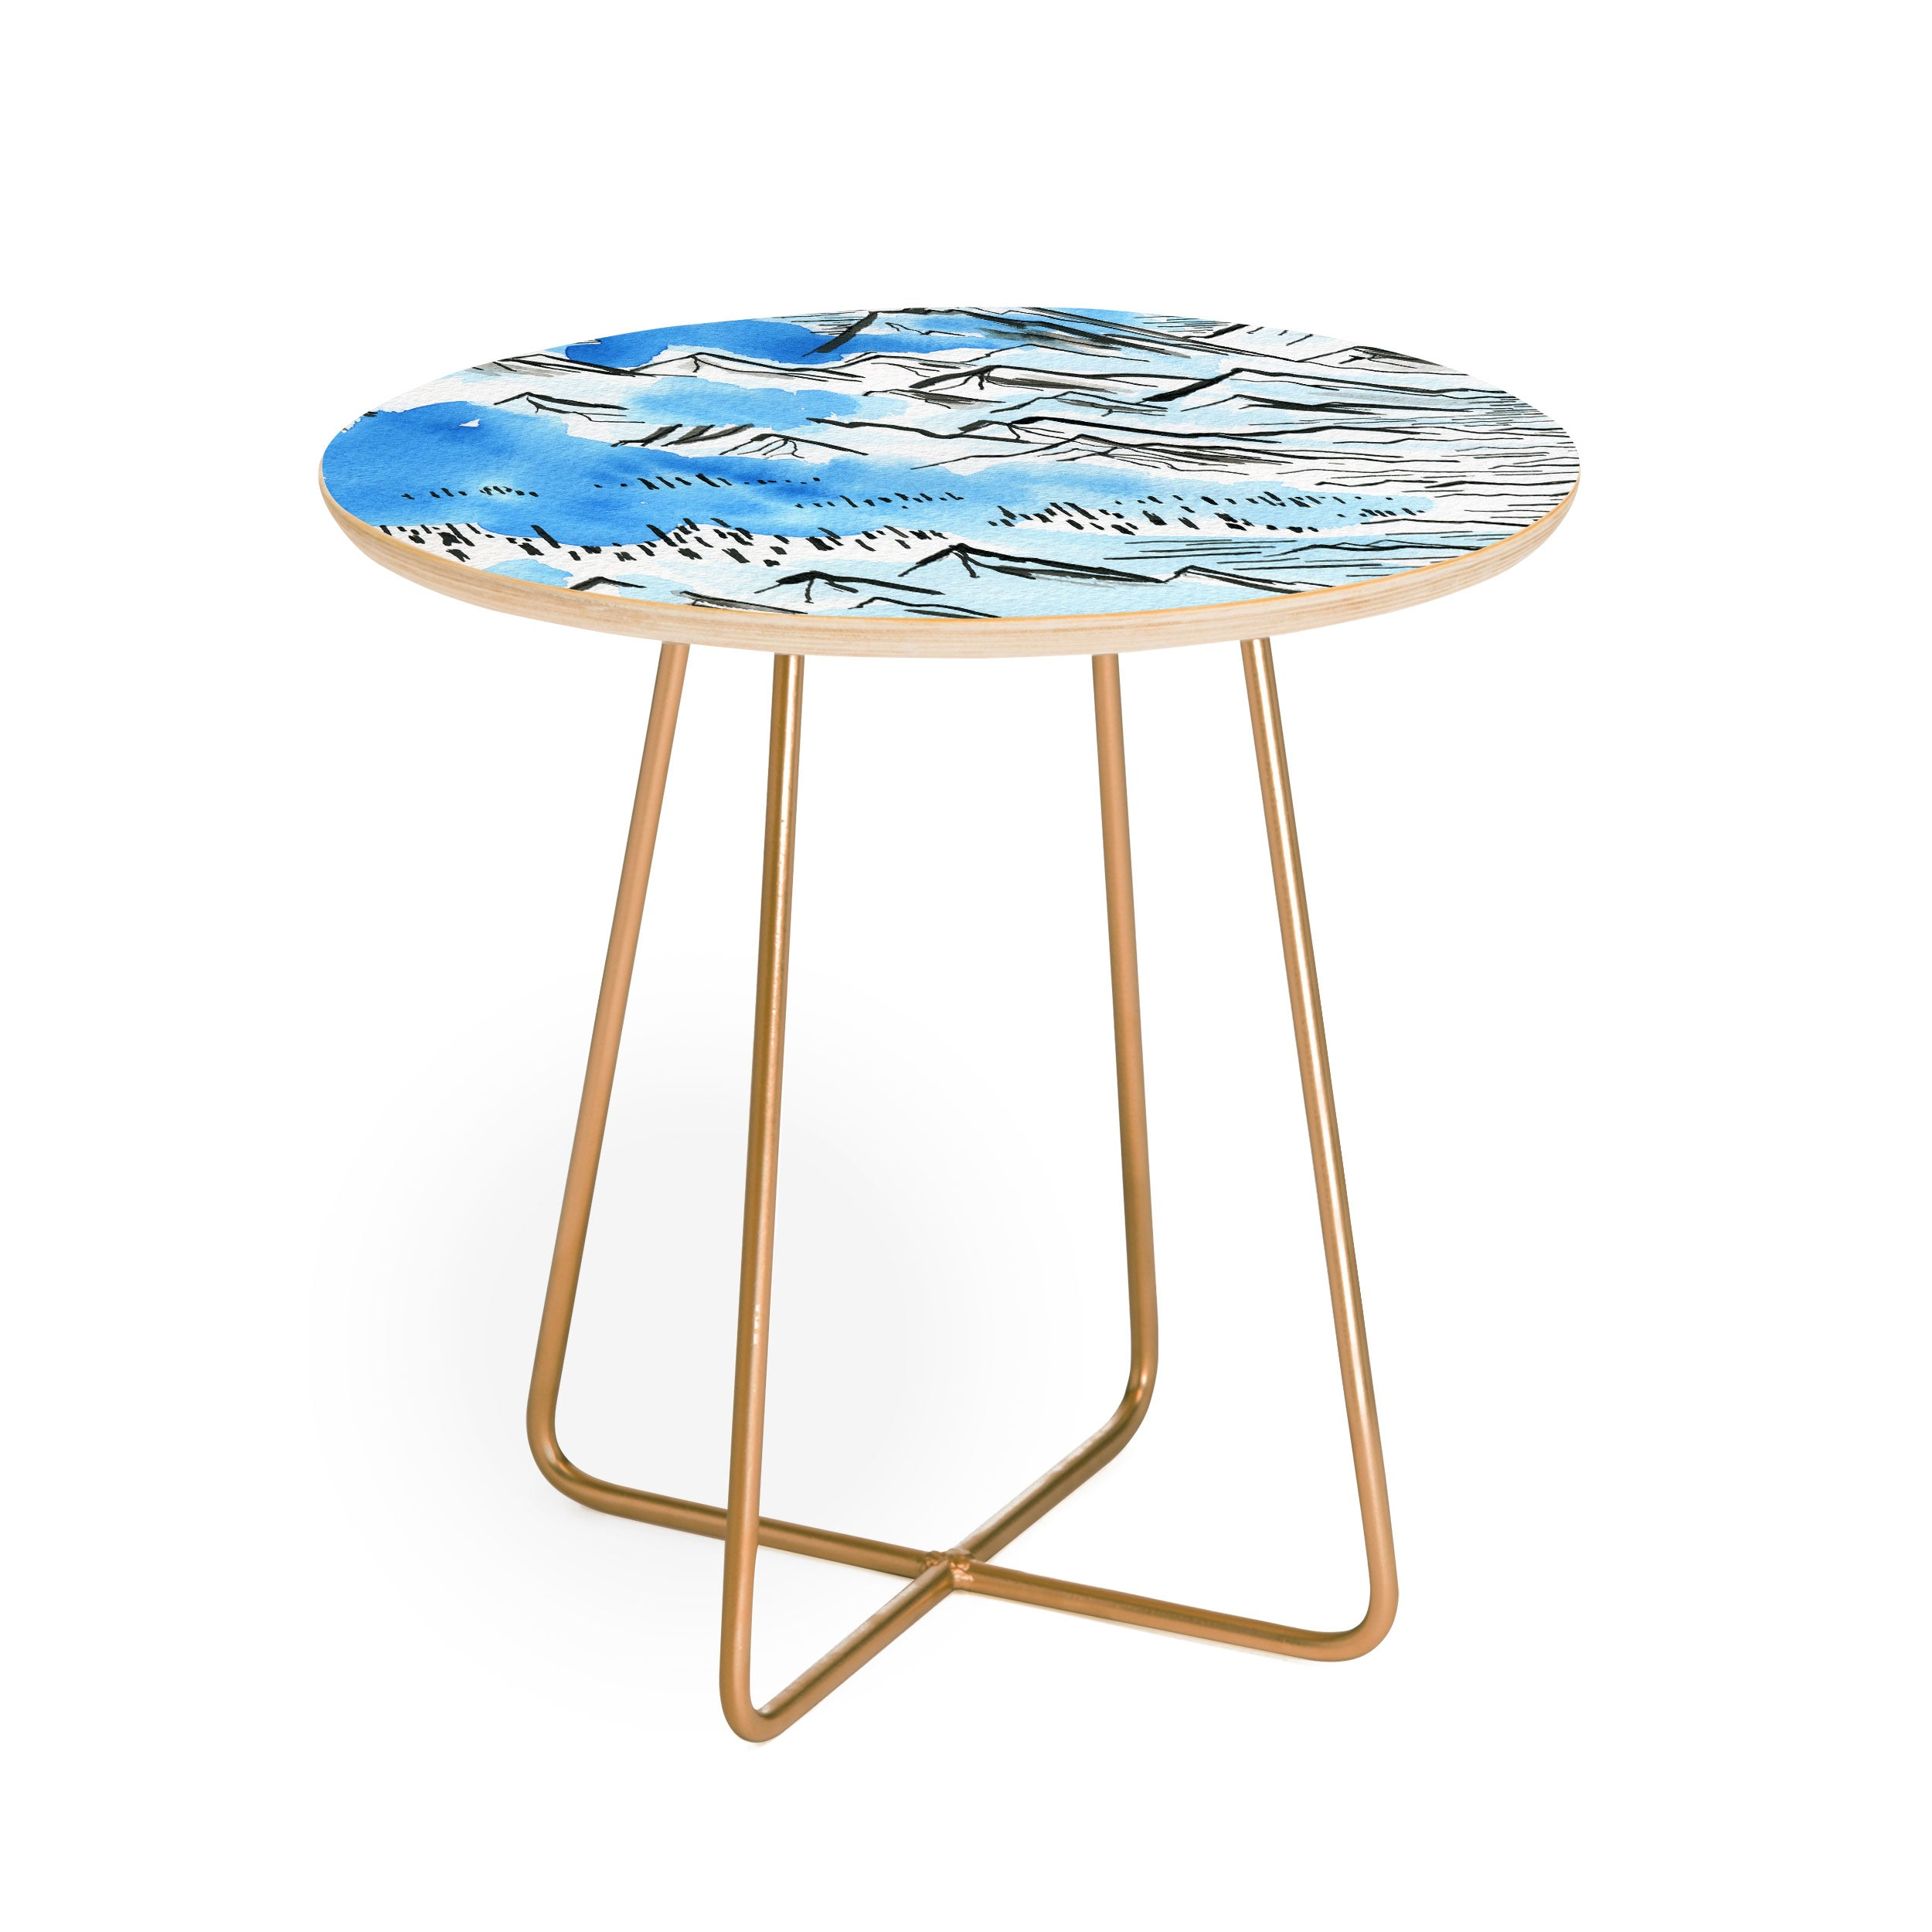 Elena Blanco Pyrenees Round Side Table